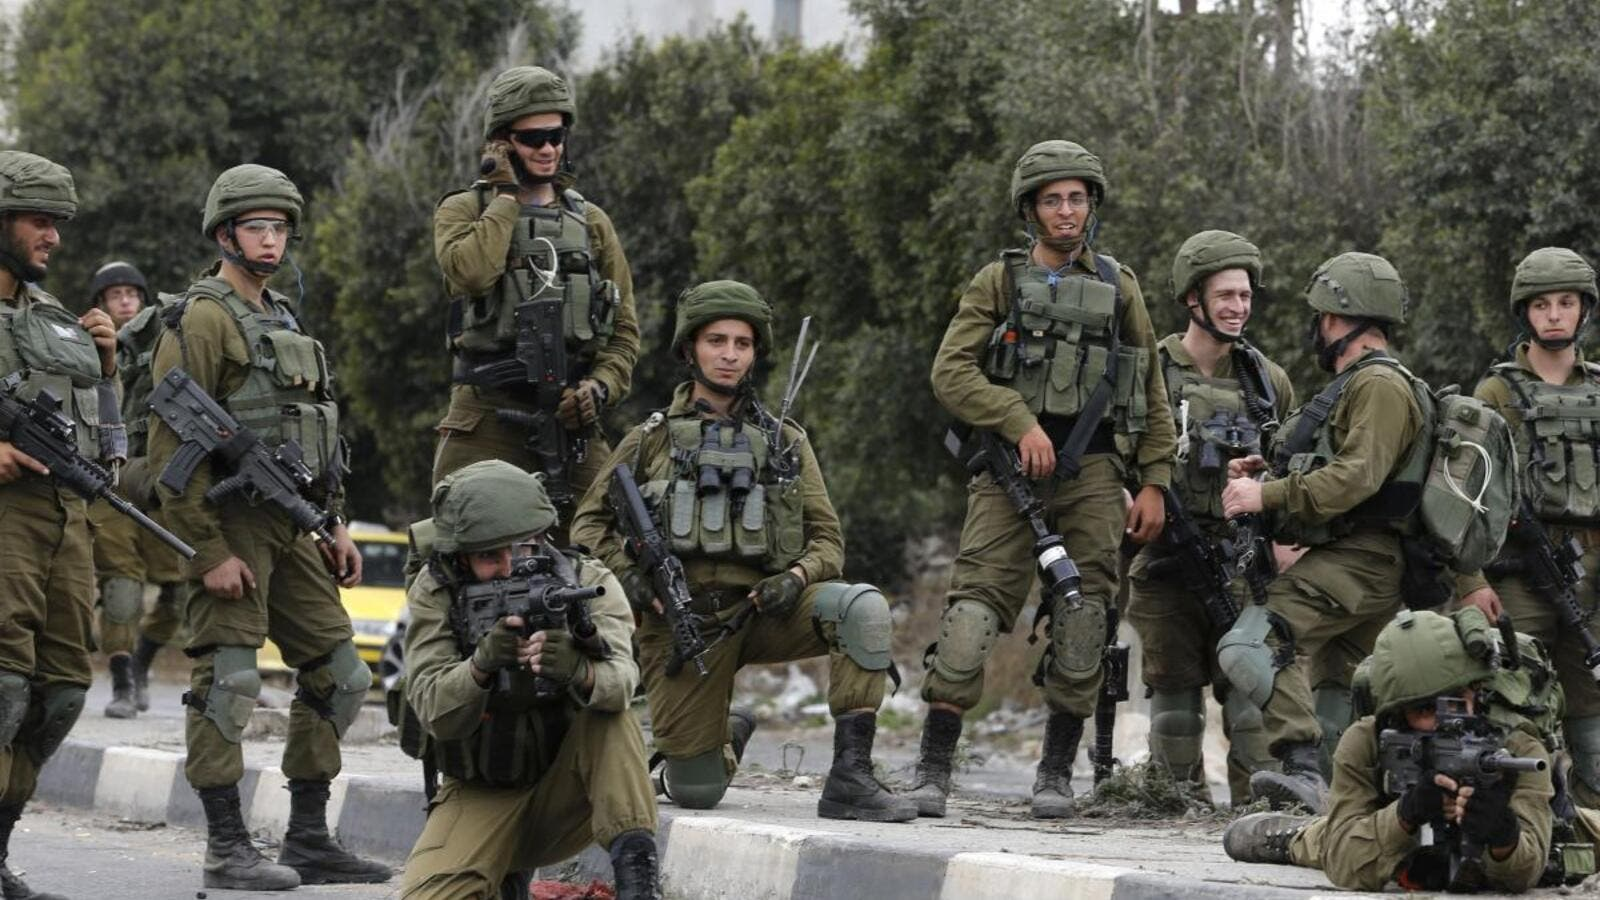 Israeli security forces are seen in the West Bank on 22 December 2017 [JAAFAR ASHTIYEH/AFP/Getty Images]